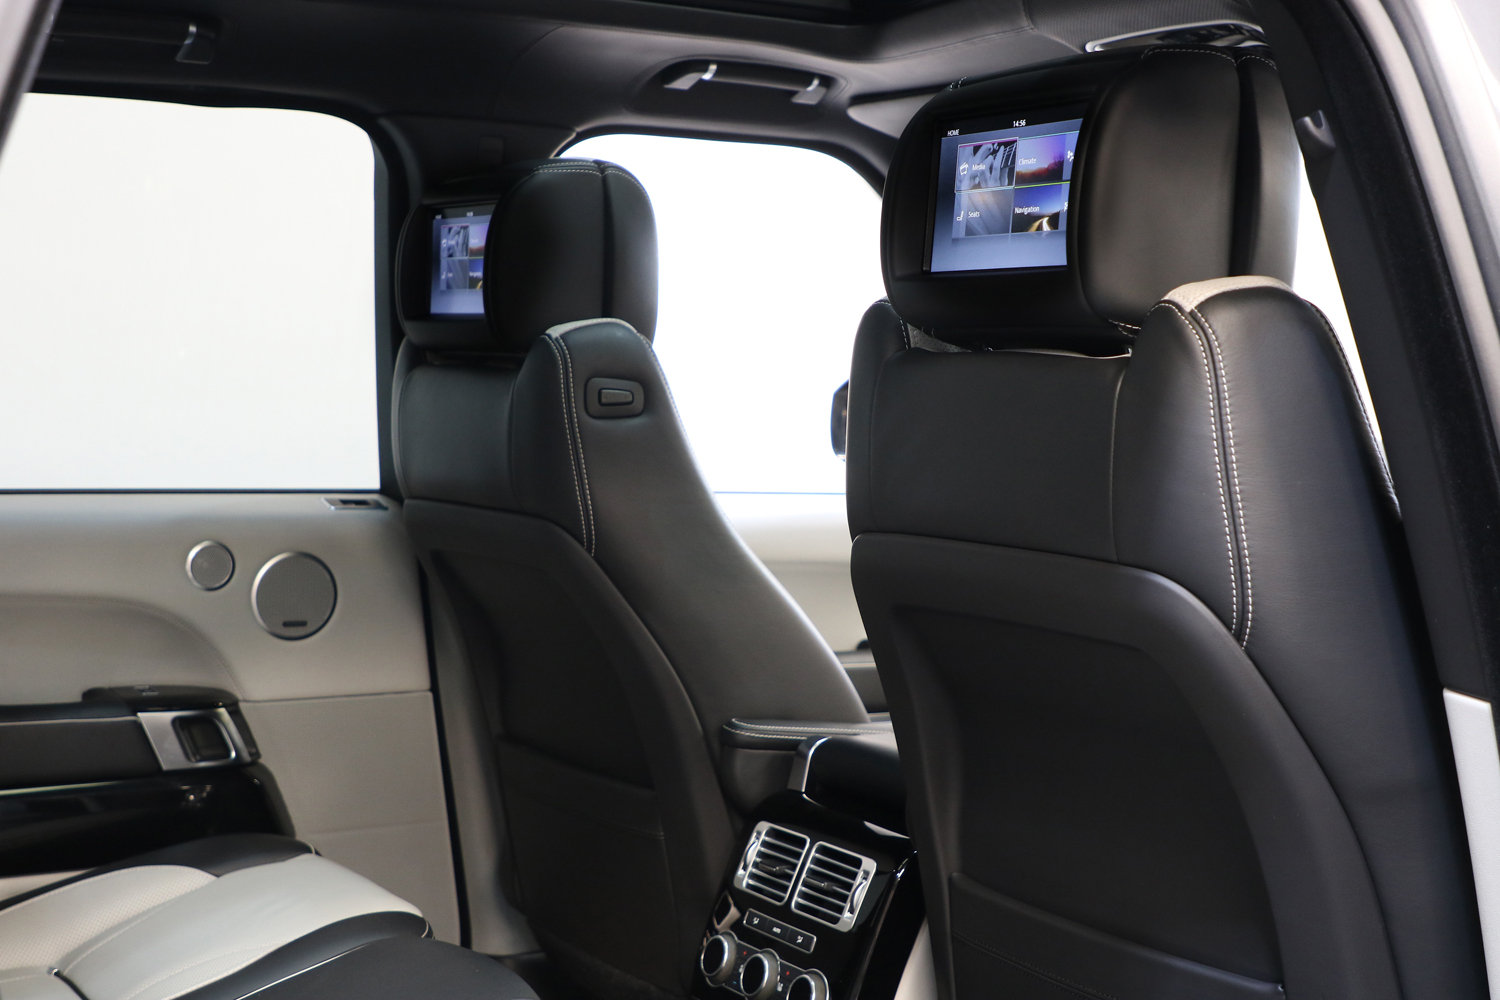 2017 67 RANGE ROVER 4.4 SDV8 AUTOBIOGRAPHY OVERFINCH AUTO  For Sale (picture 6 of 6)